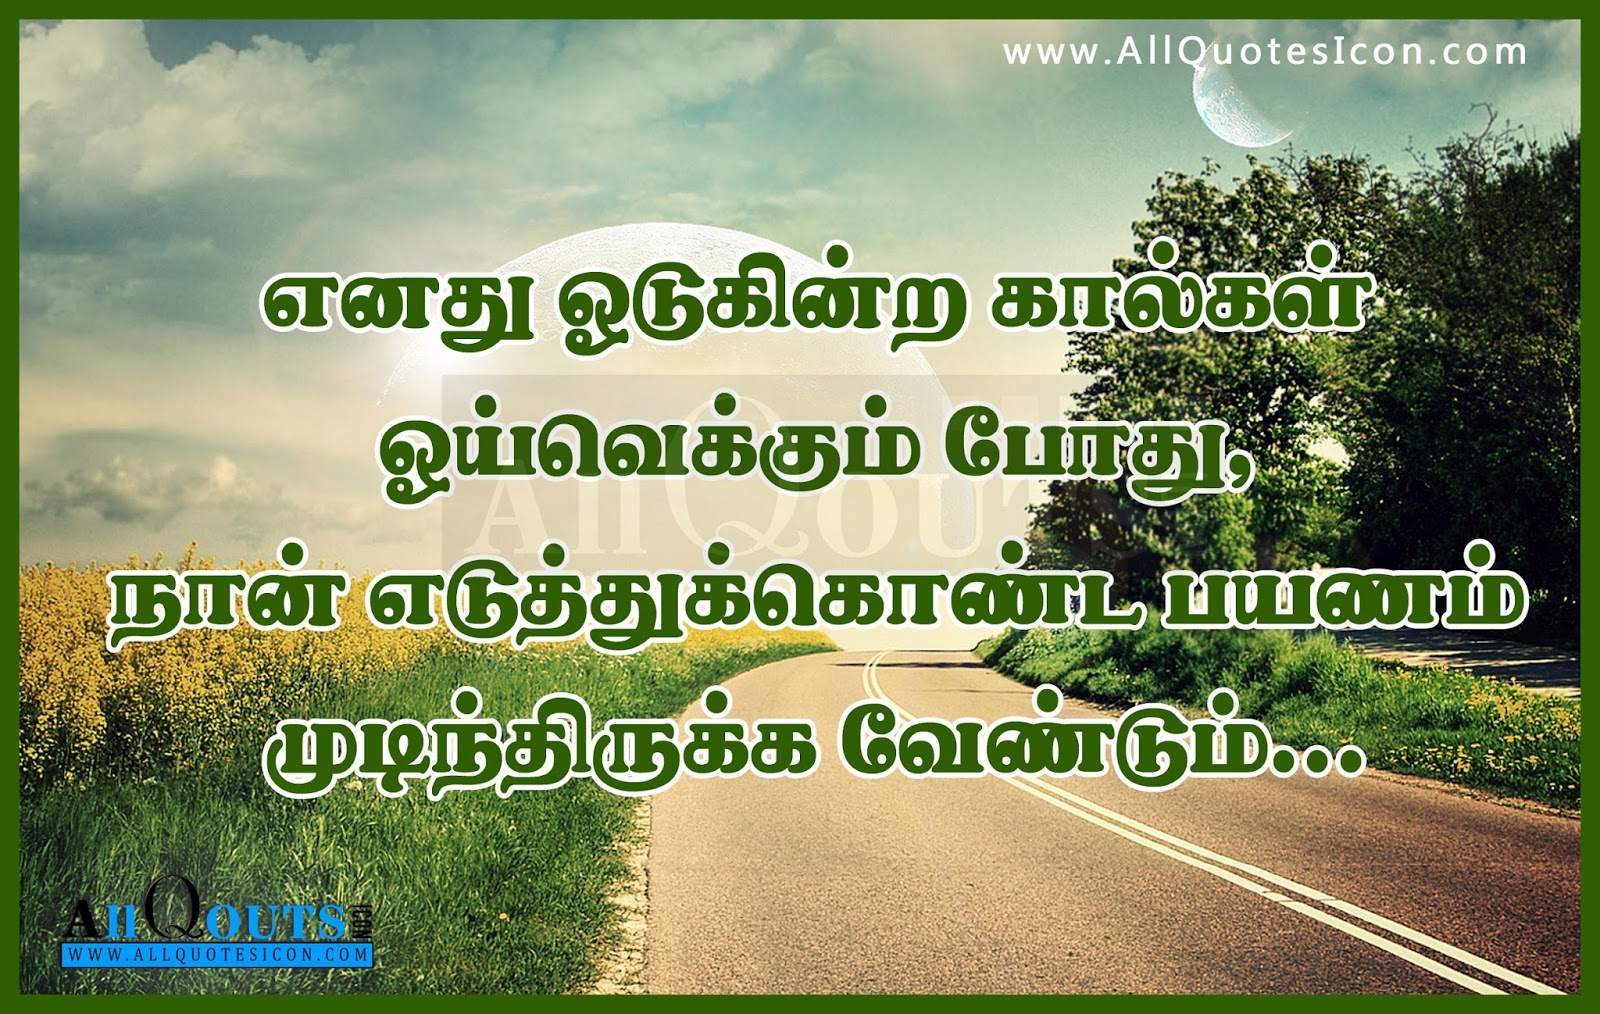 25 Tamil Life Quotes Images Famous Cute Life Motivational Thoughts